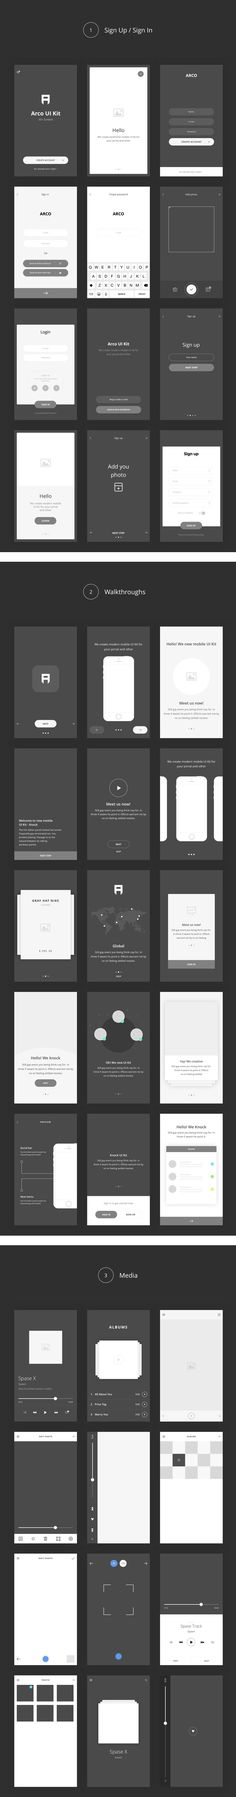 Arco – Wireframe Mobile UI Kit. A consistent and meticulously organized set of vector-based wireframe components to quickly bring your iOS and Android app ideas to life. Think of it as your w...